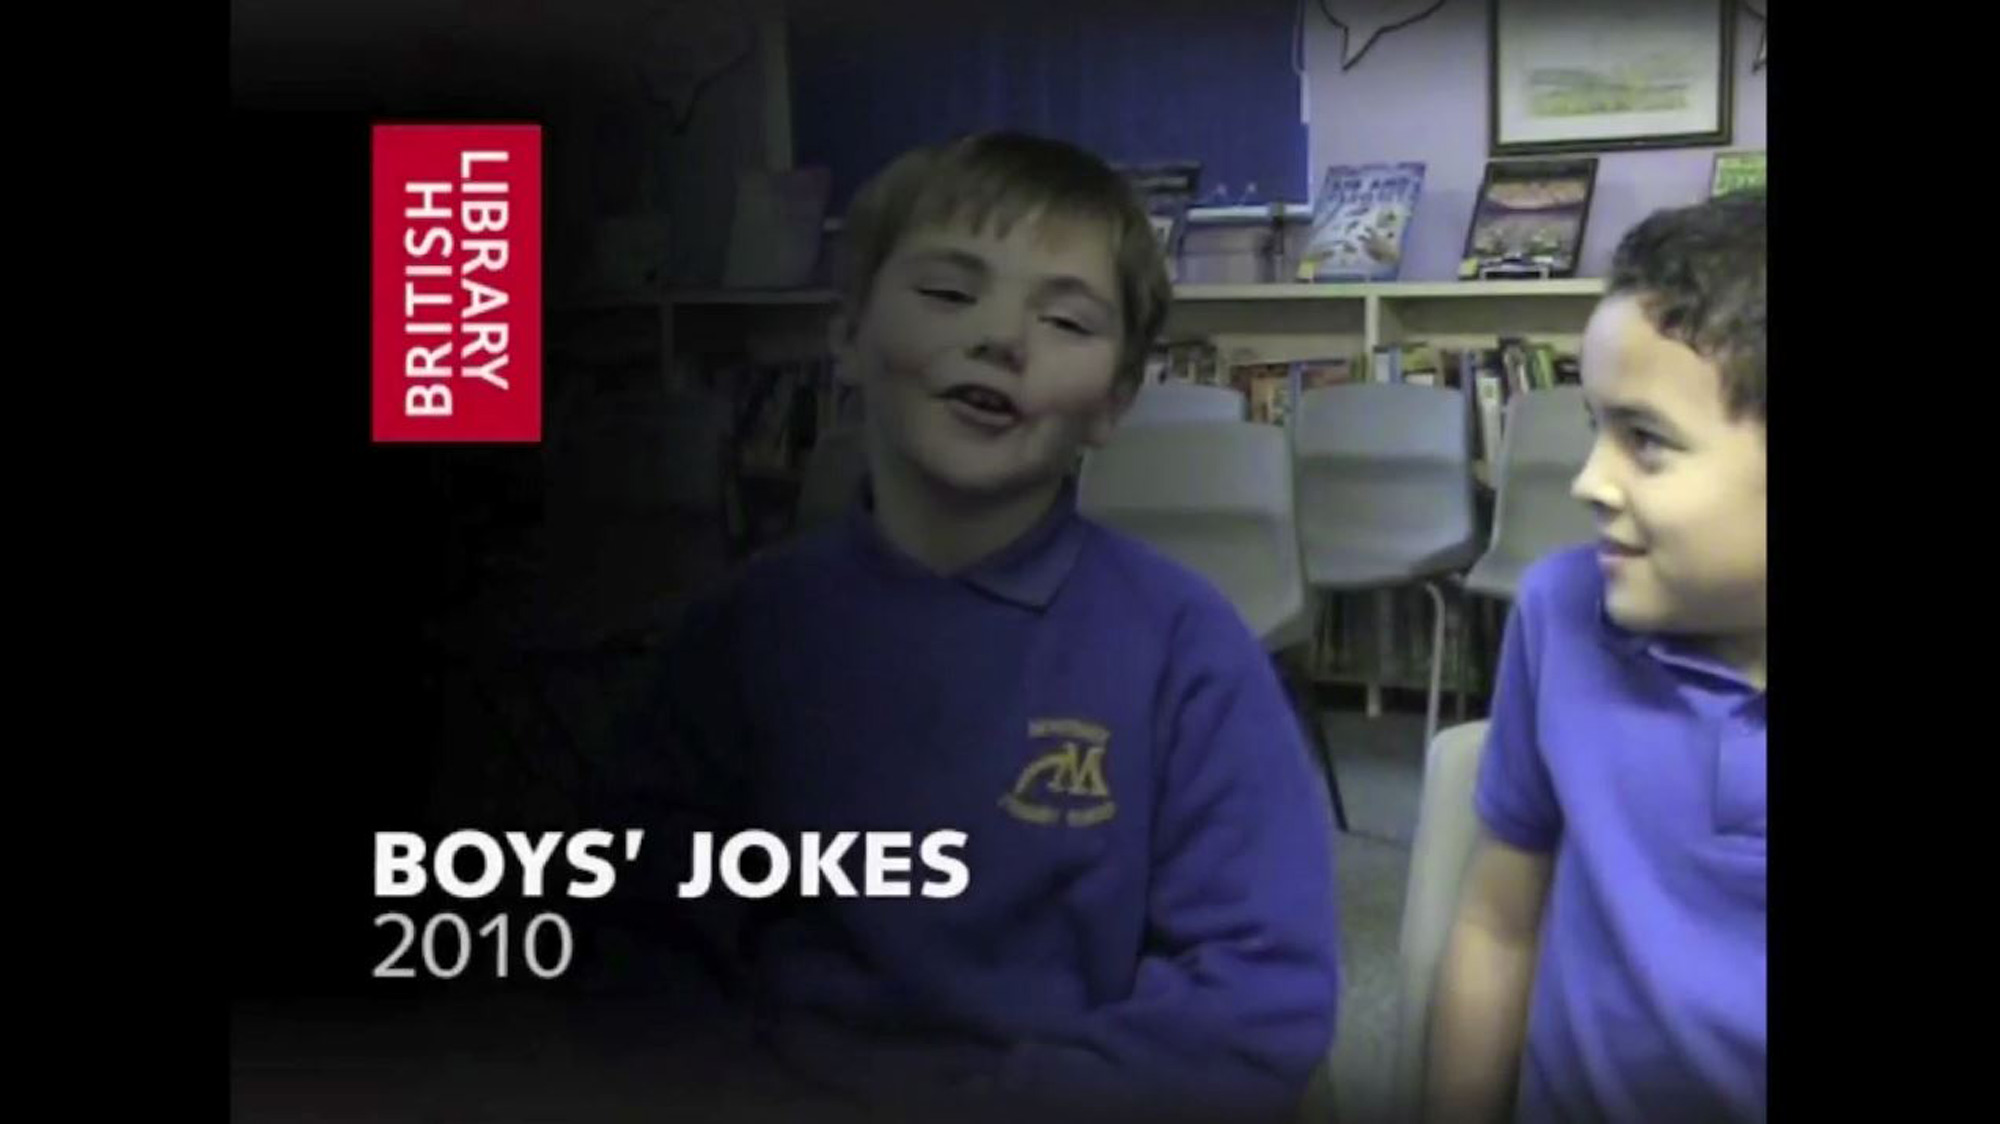 Humour, jokes and rude rhymes - The British Library